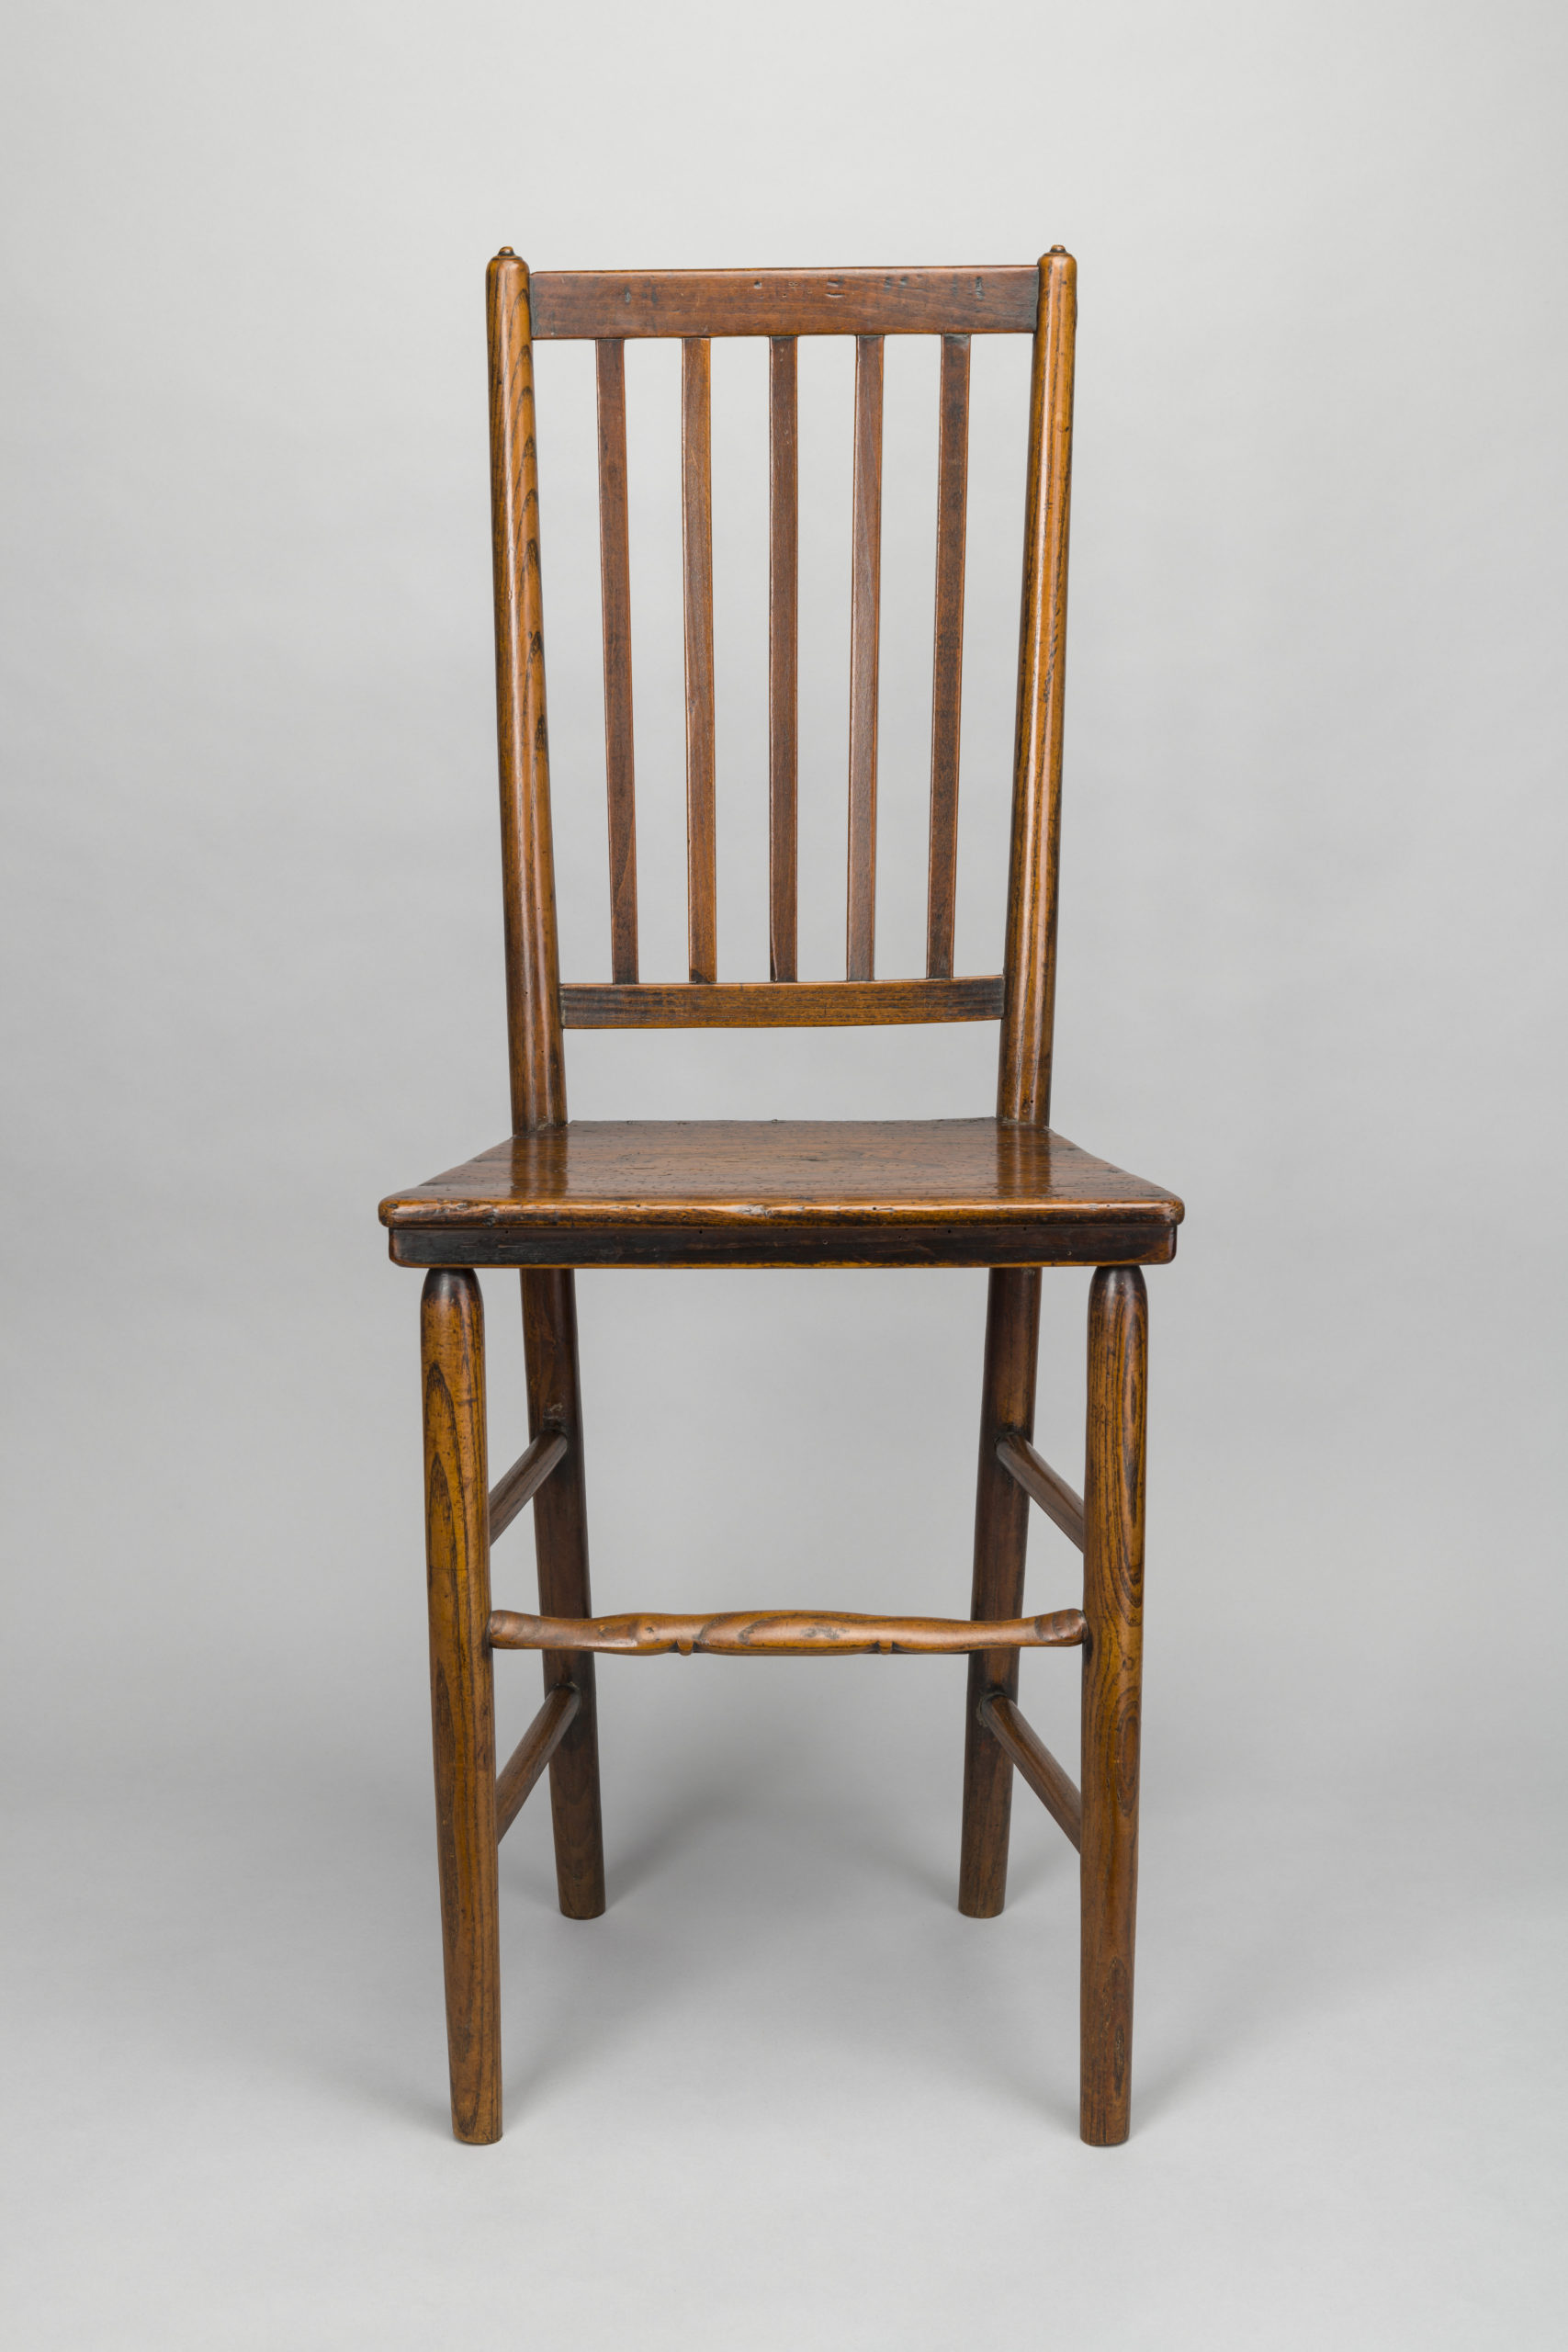 Wooden chair with spindles on the back of the chair.